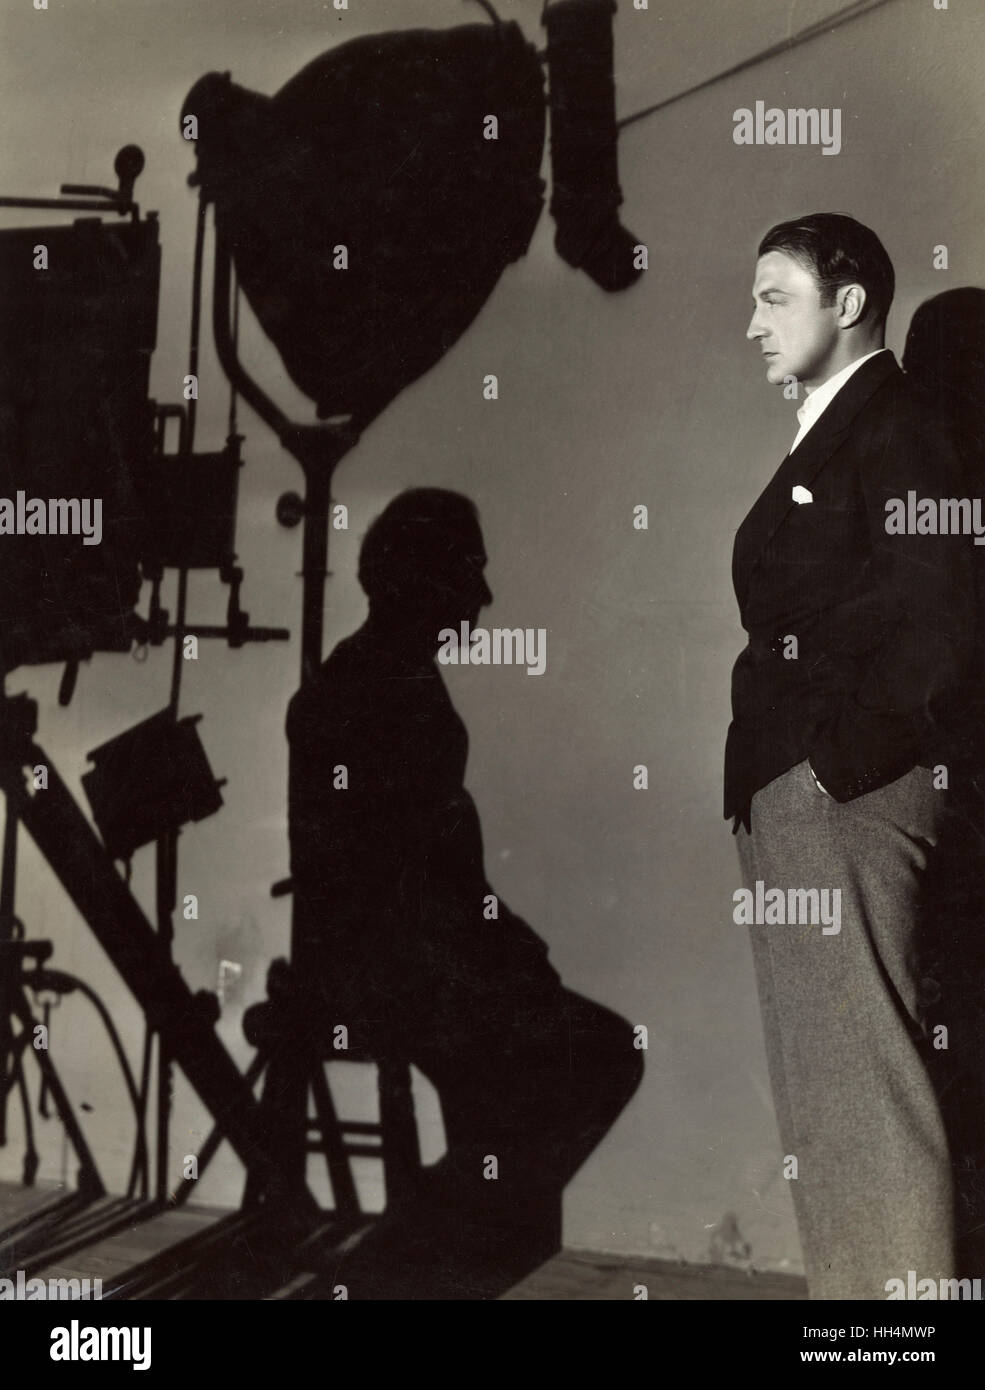 Clive Brook specially poses for the cameraman during the filming of 'The Man From Yesterday' (1932) - Promo - Stock Image